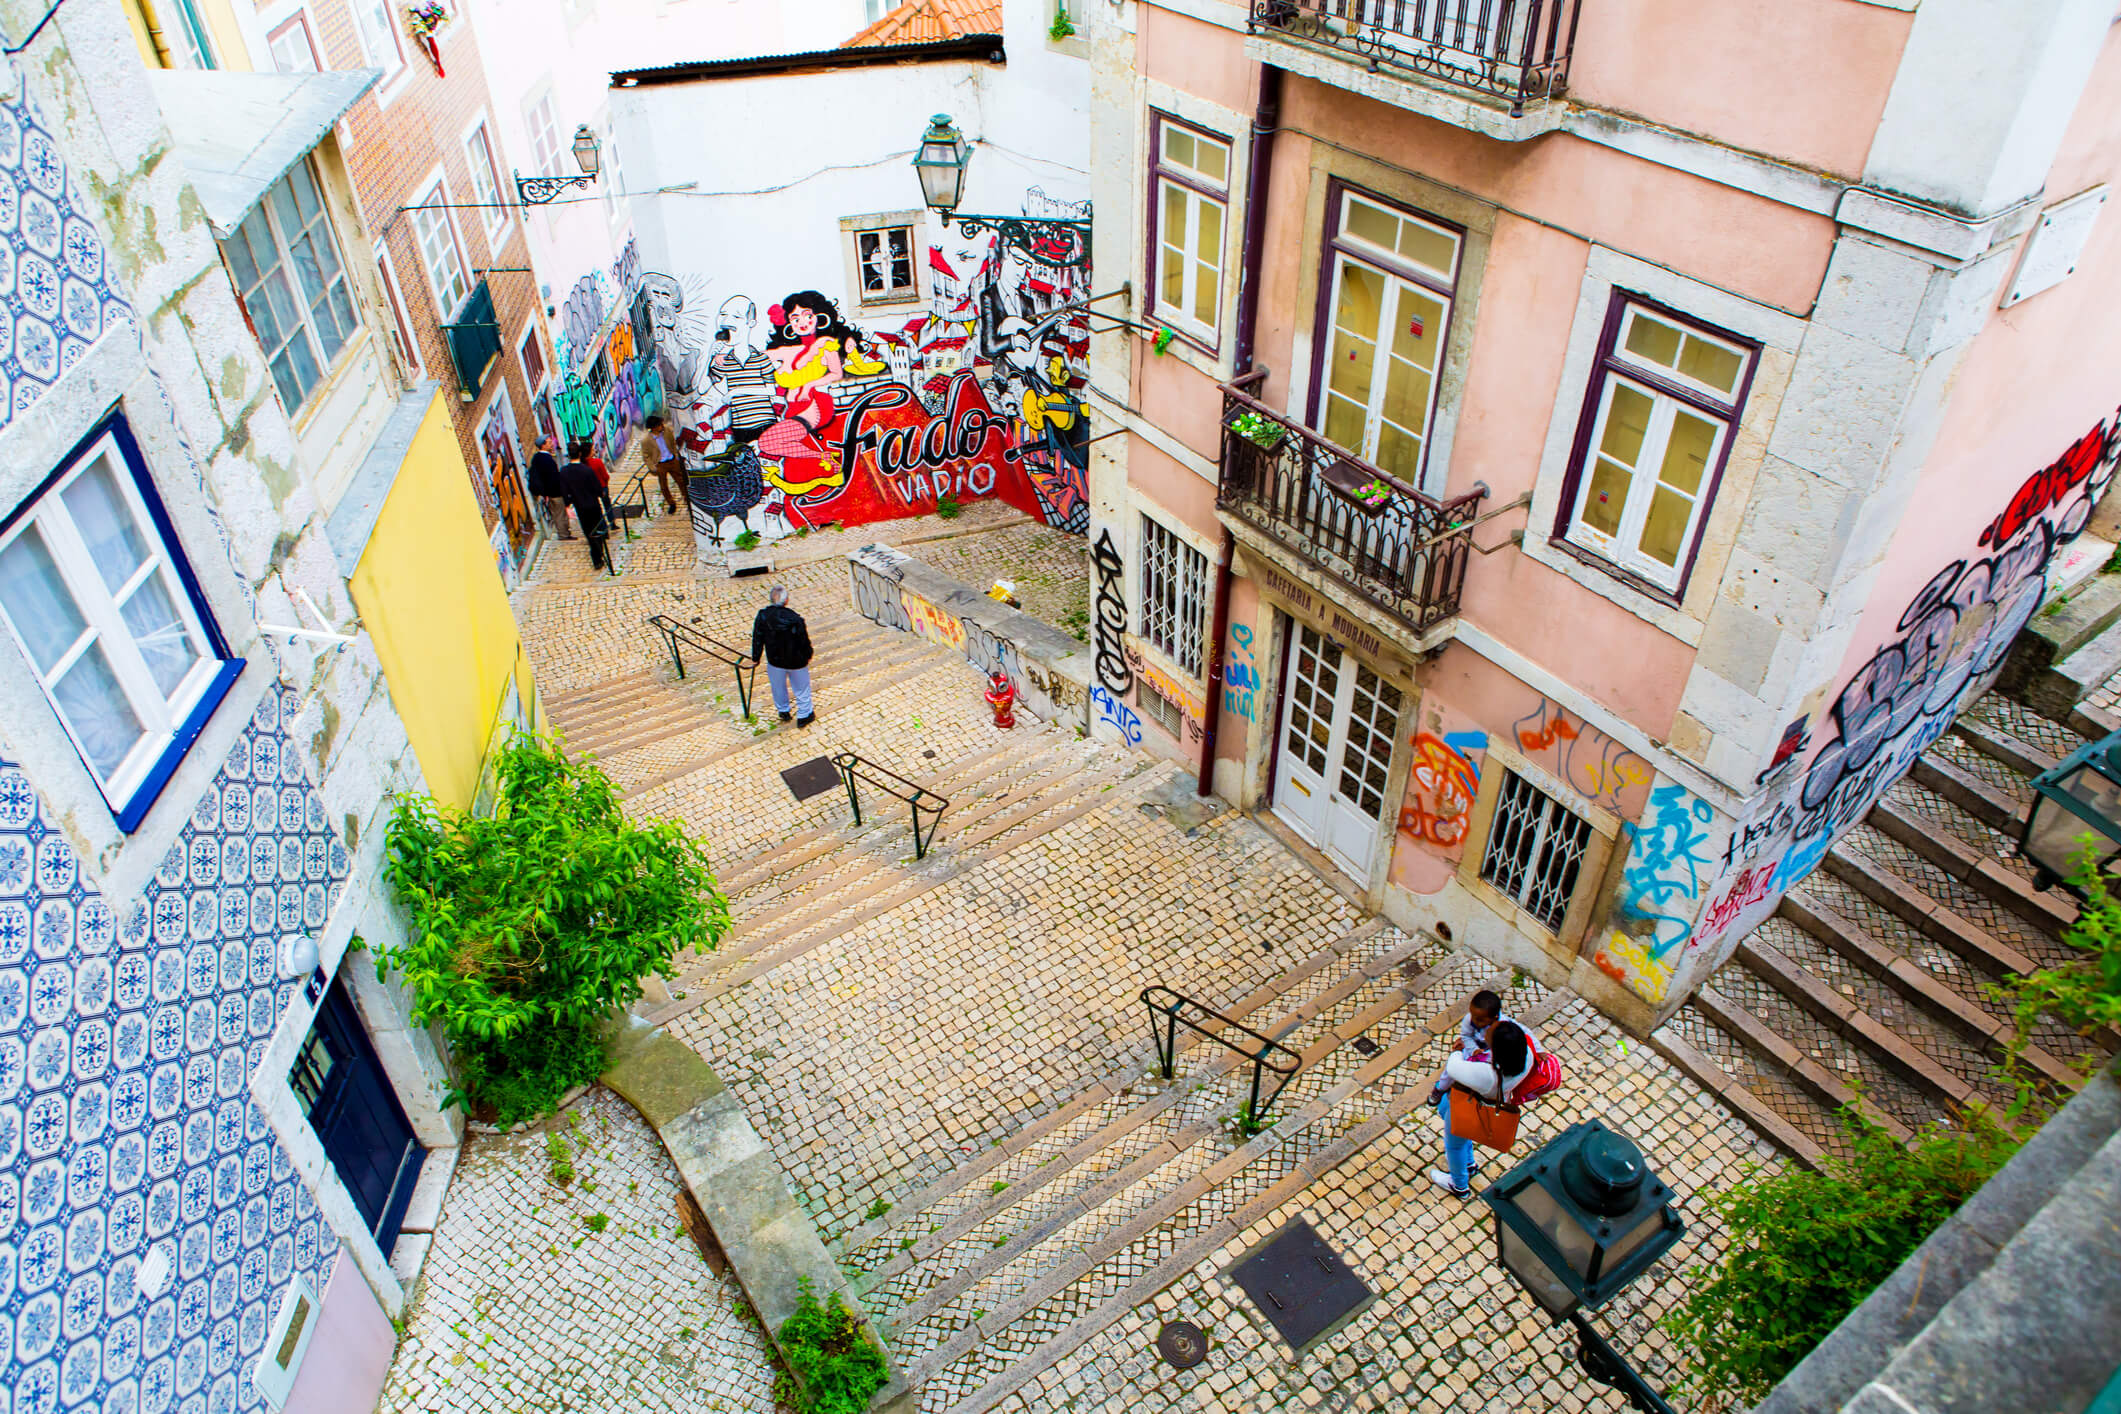 Stairs, buildings and street art in Alfama - what to see in lisbon